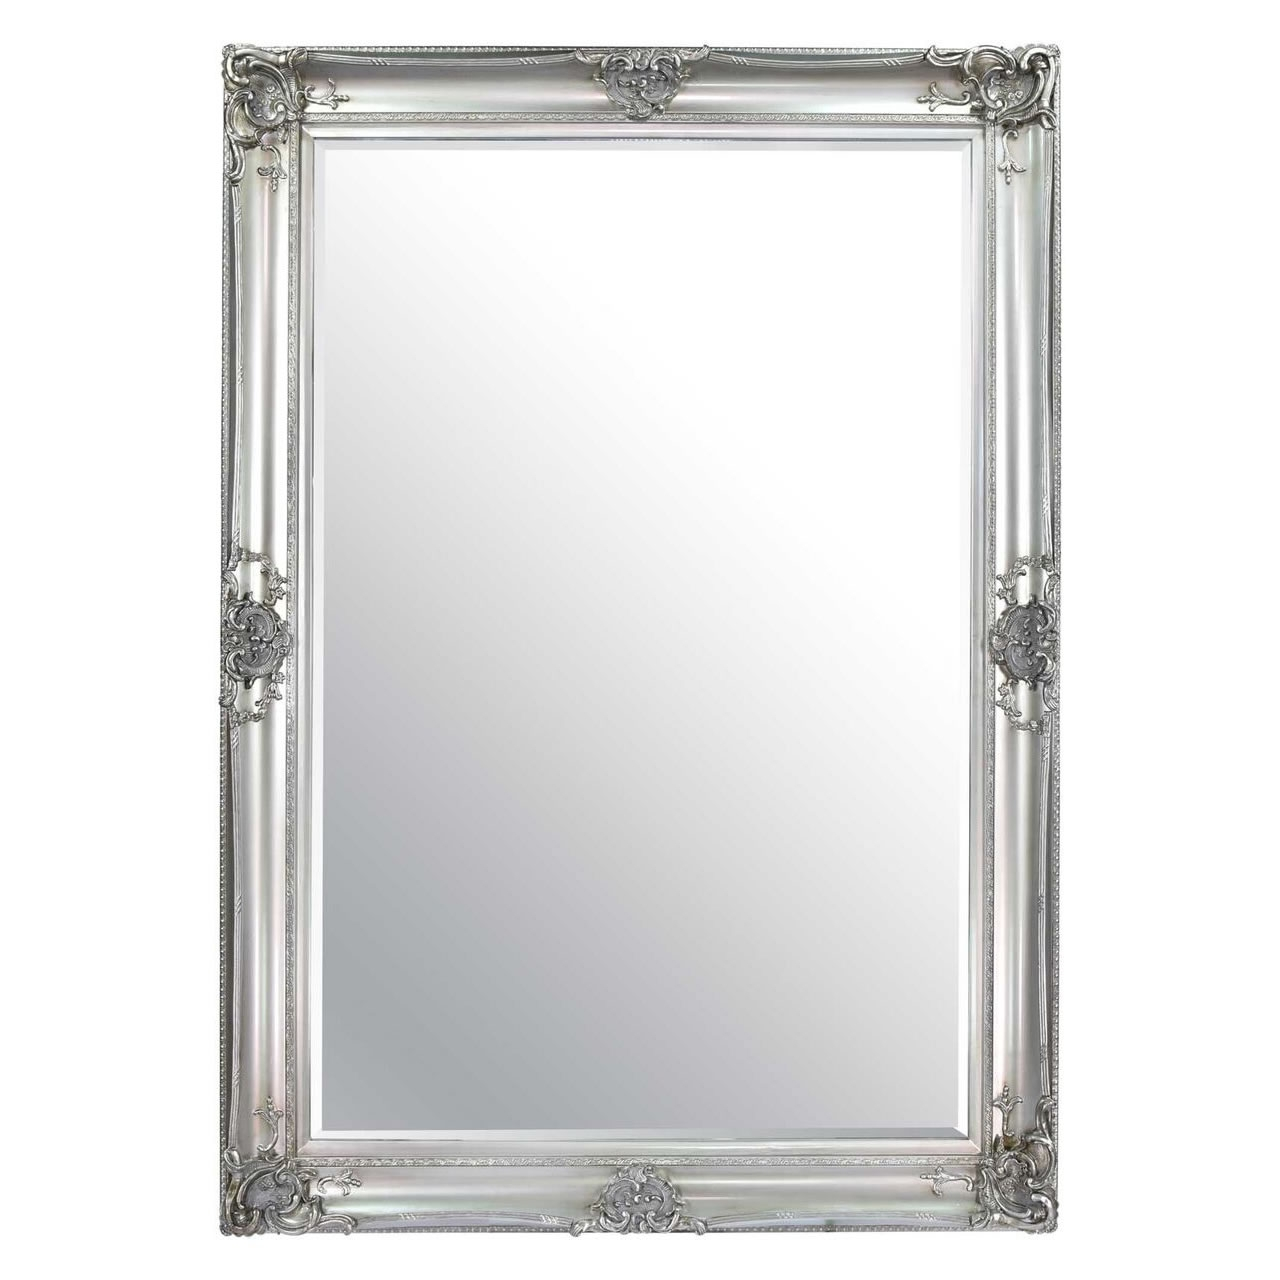 Full Length And Oversize Mirrors Regarding Ornate Silver Mirrors (Image 6 of 15)